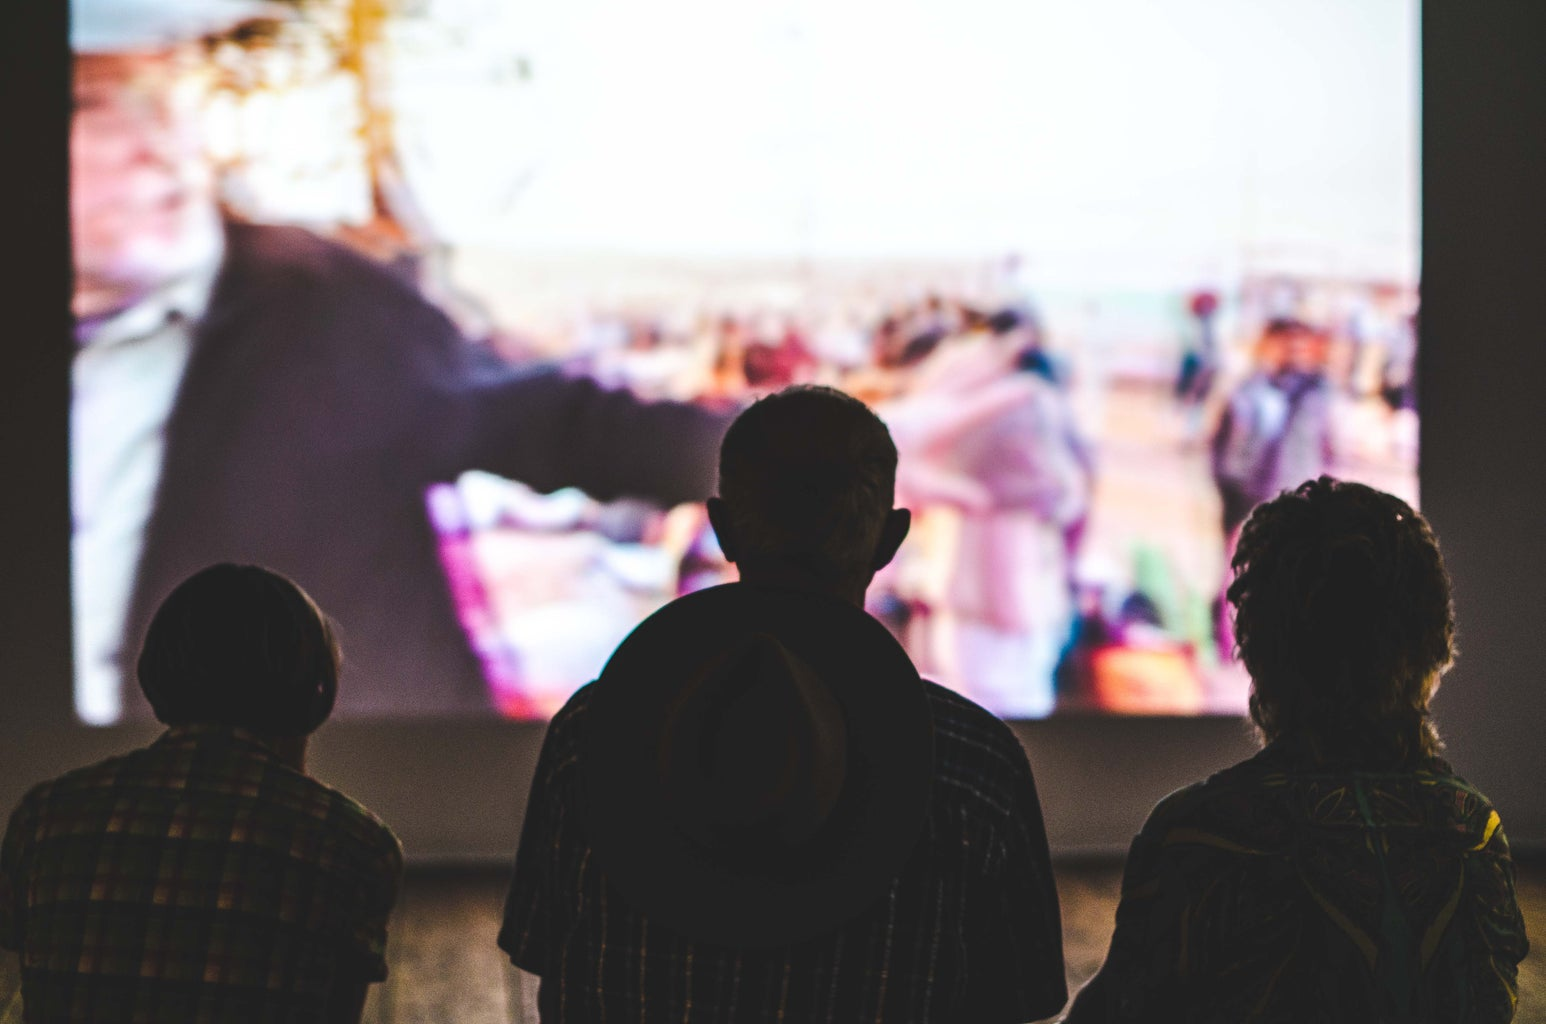 People in front of a screen